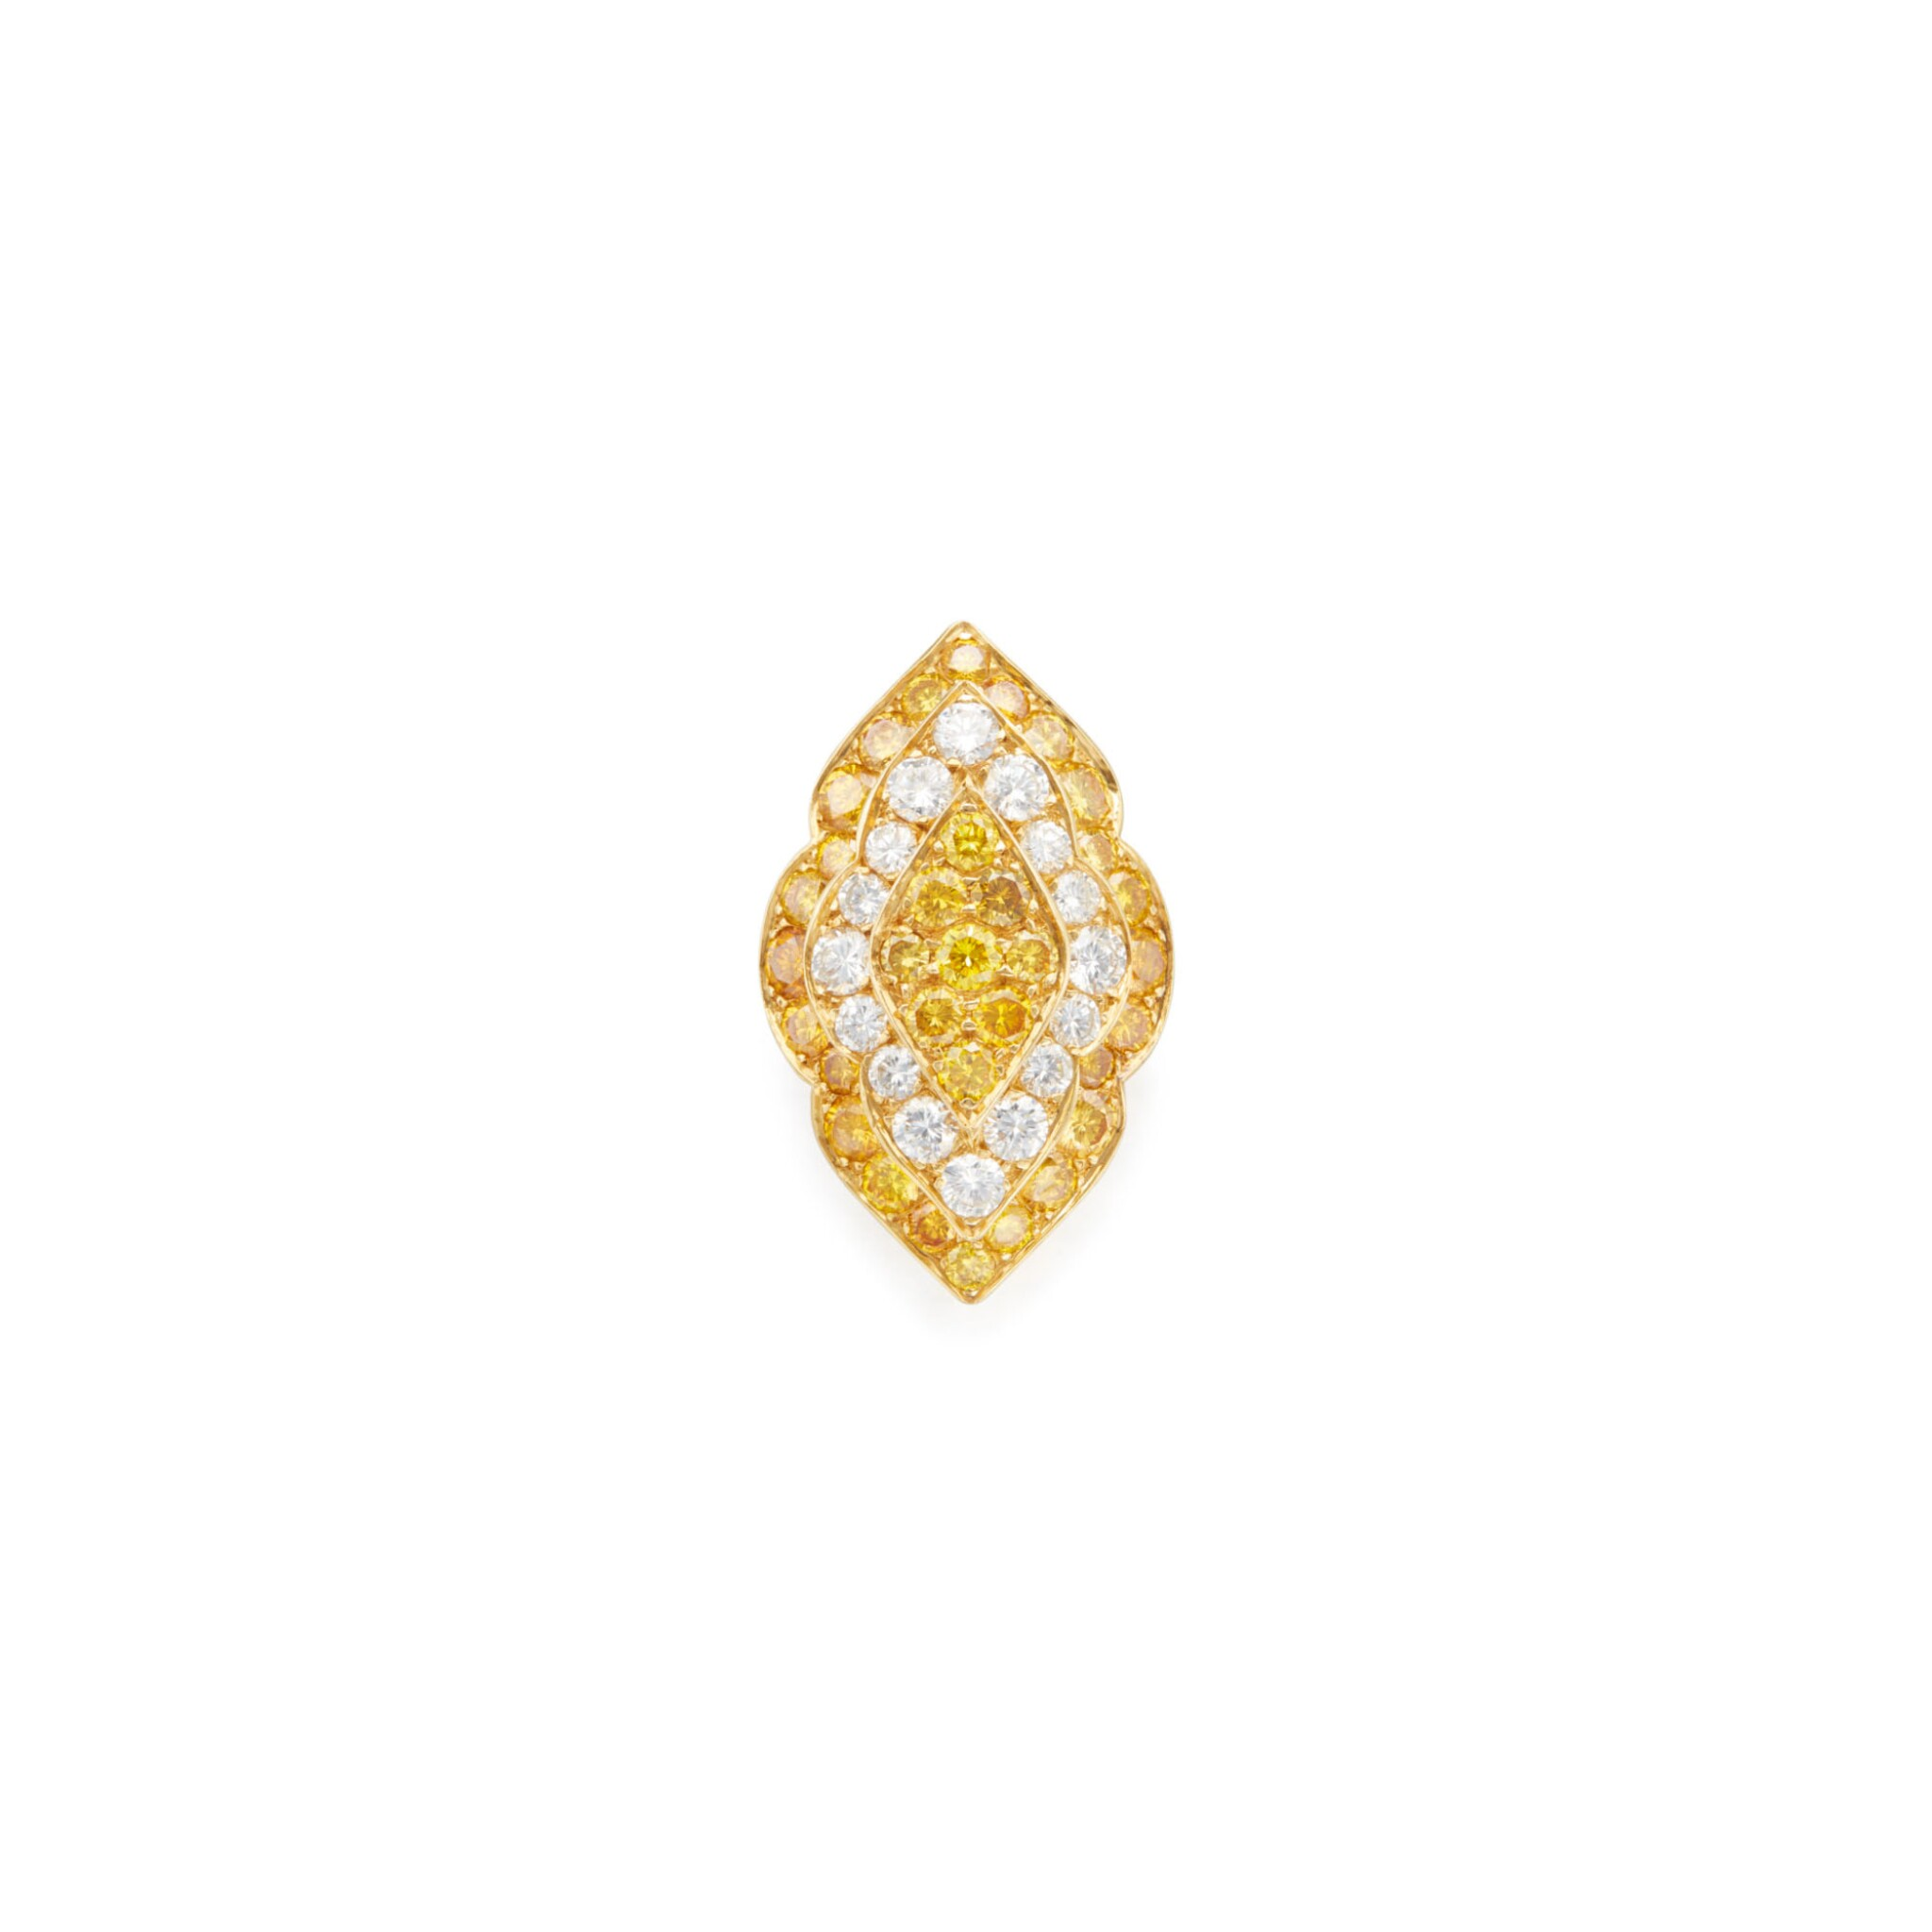 View full screen - View 1 of Lot 235. DIAMOND AND COLORED DIAMOND RING, VAN CLEEF & ARPELS.